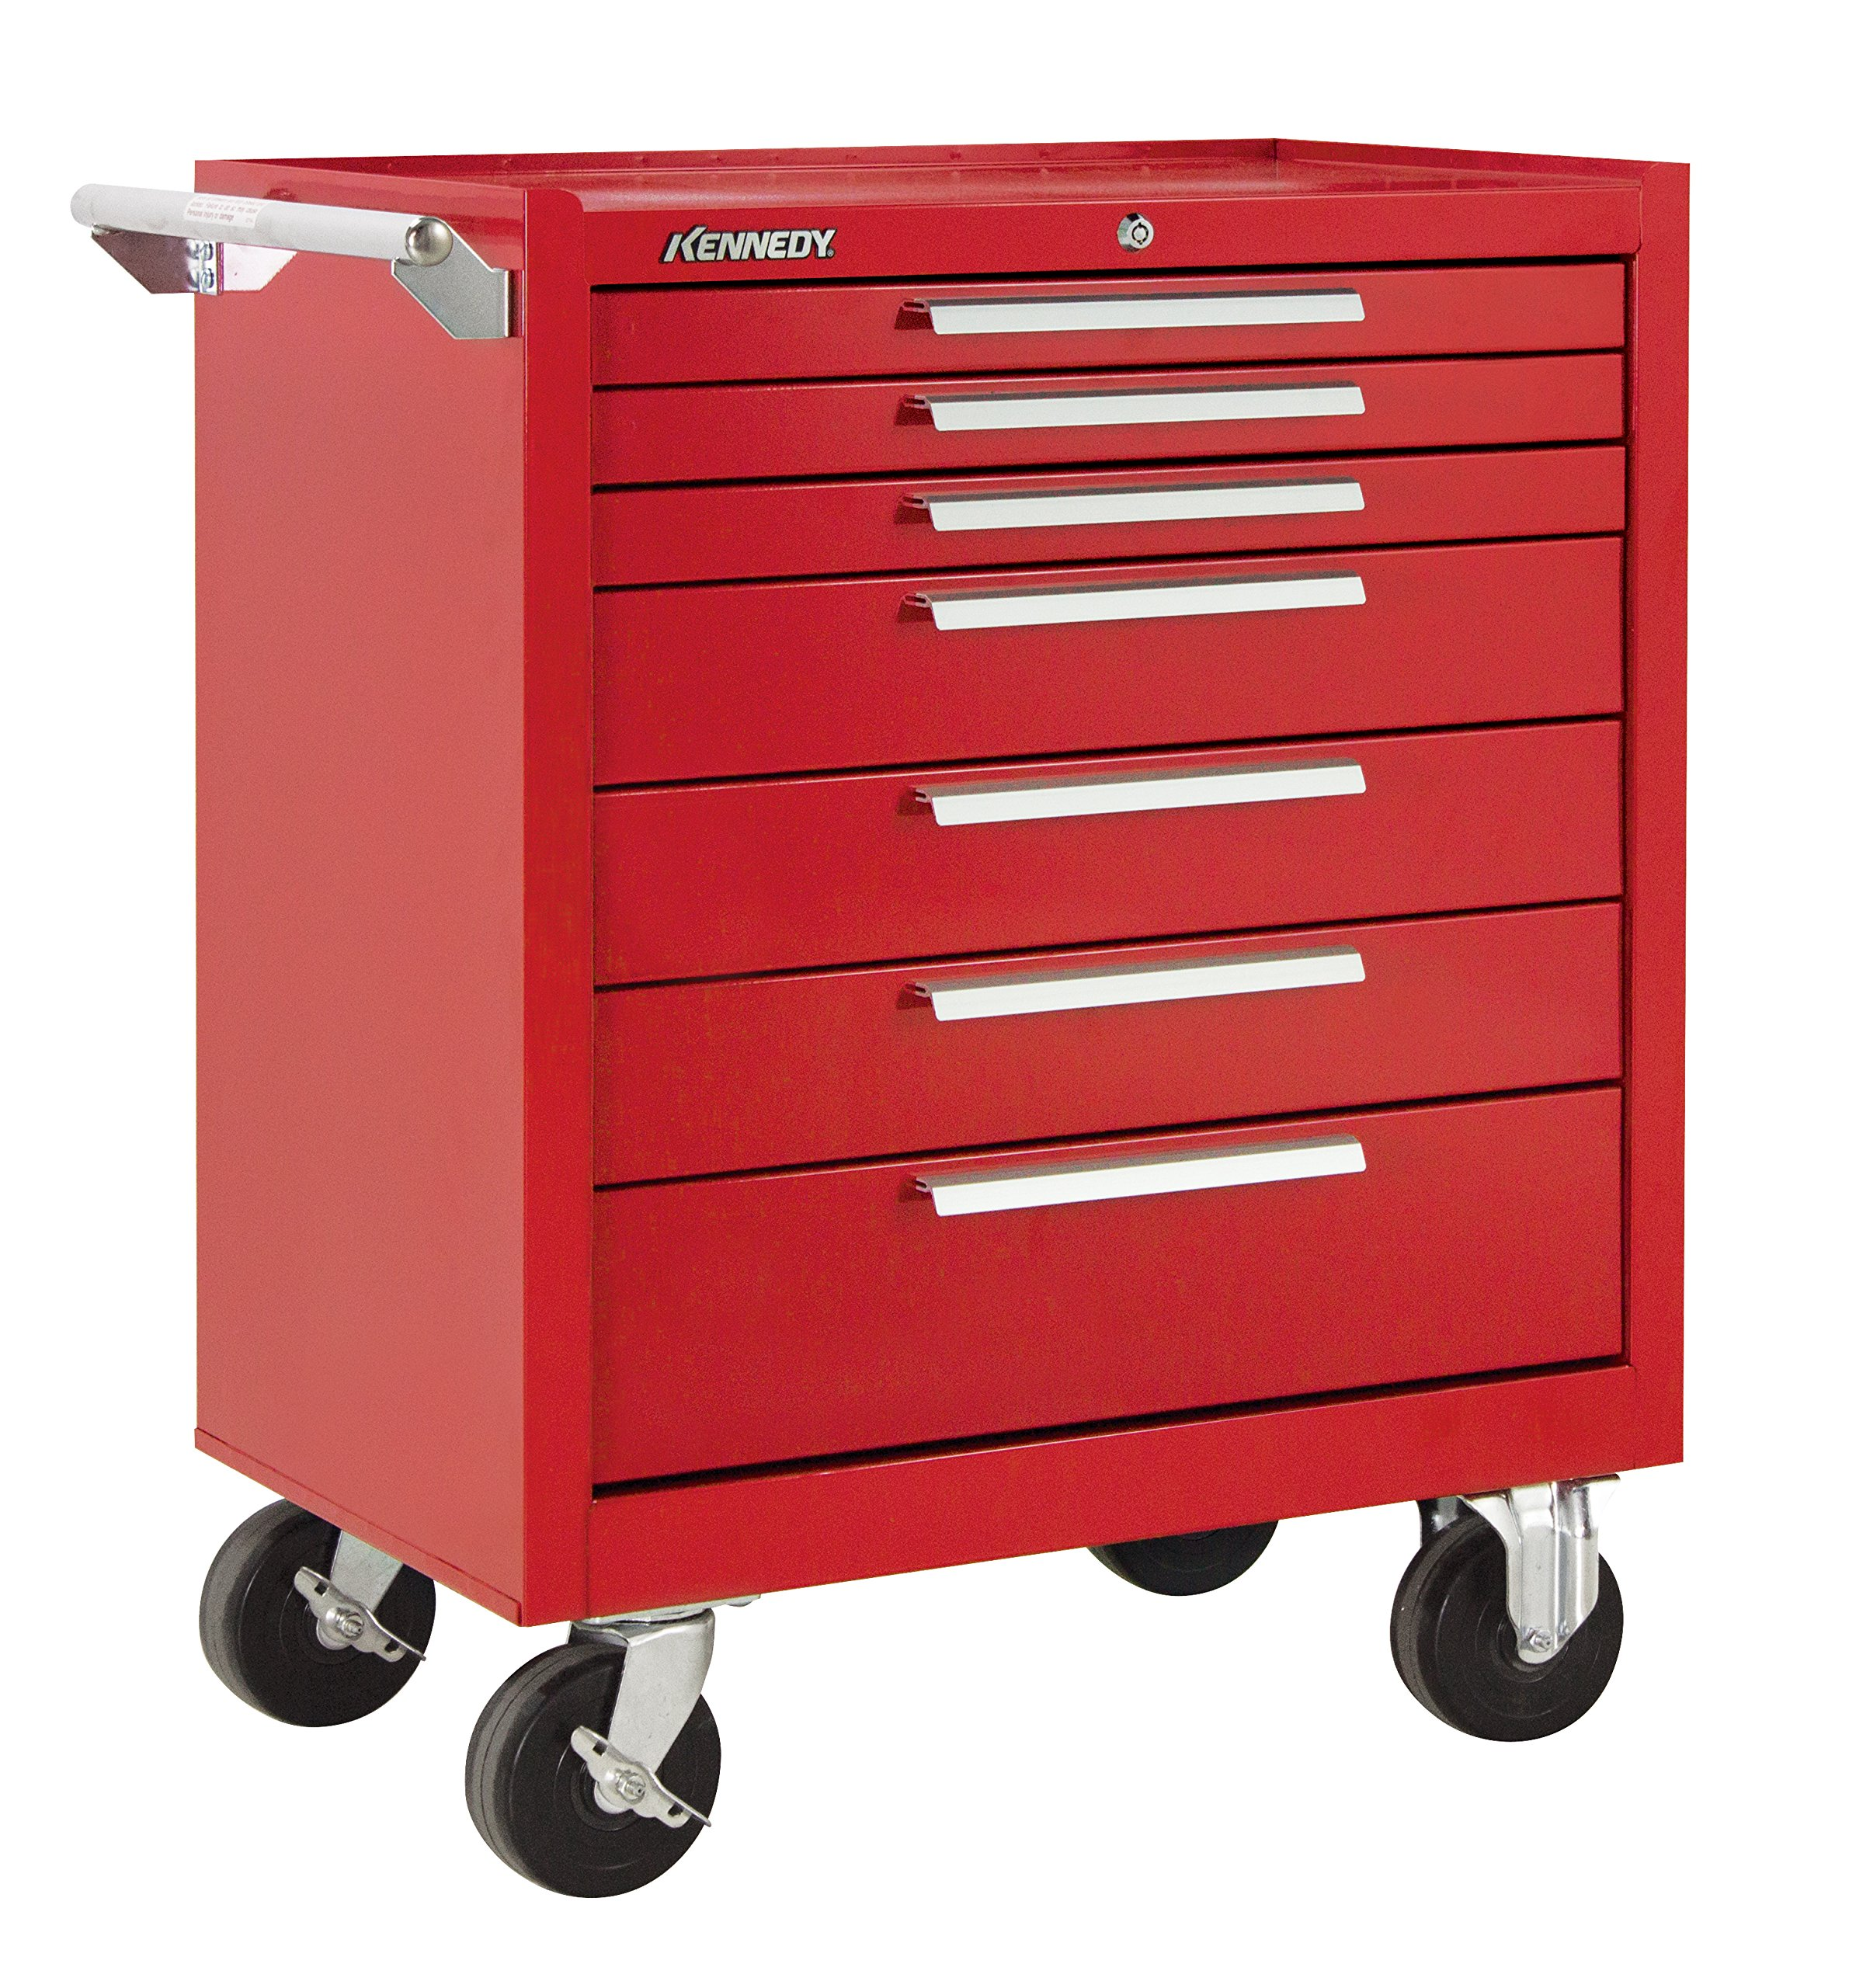 Kennedy Manufacturing 297R 29'' 7-Drawer Industrial Tool Storage Roller Cabinet With Chest And Wheels, Industrial Red